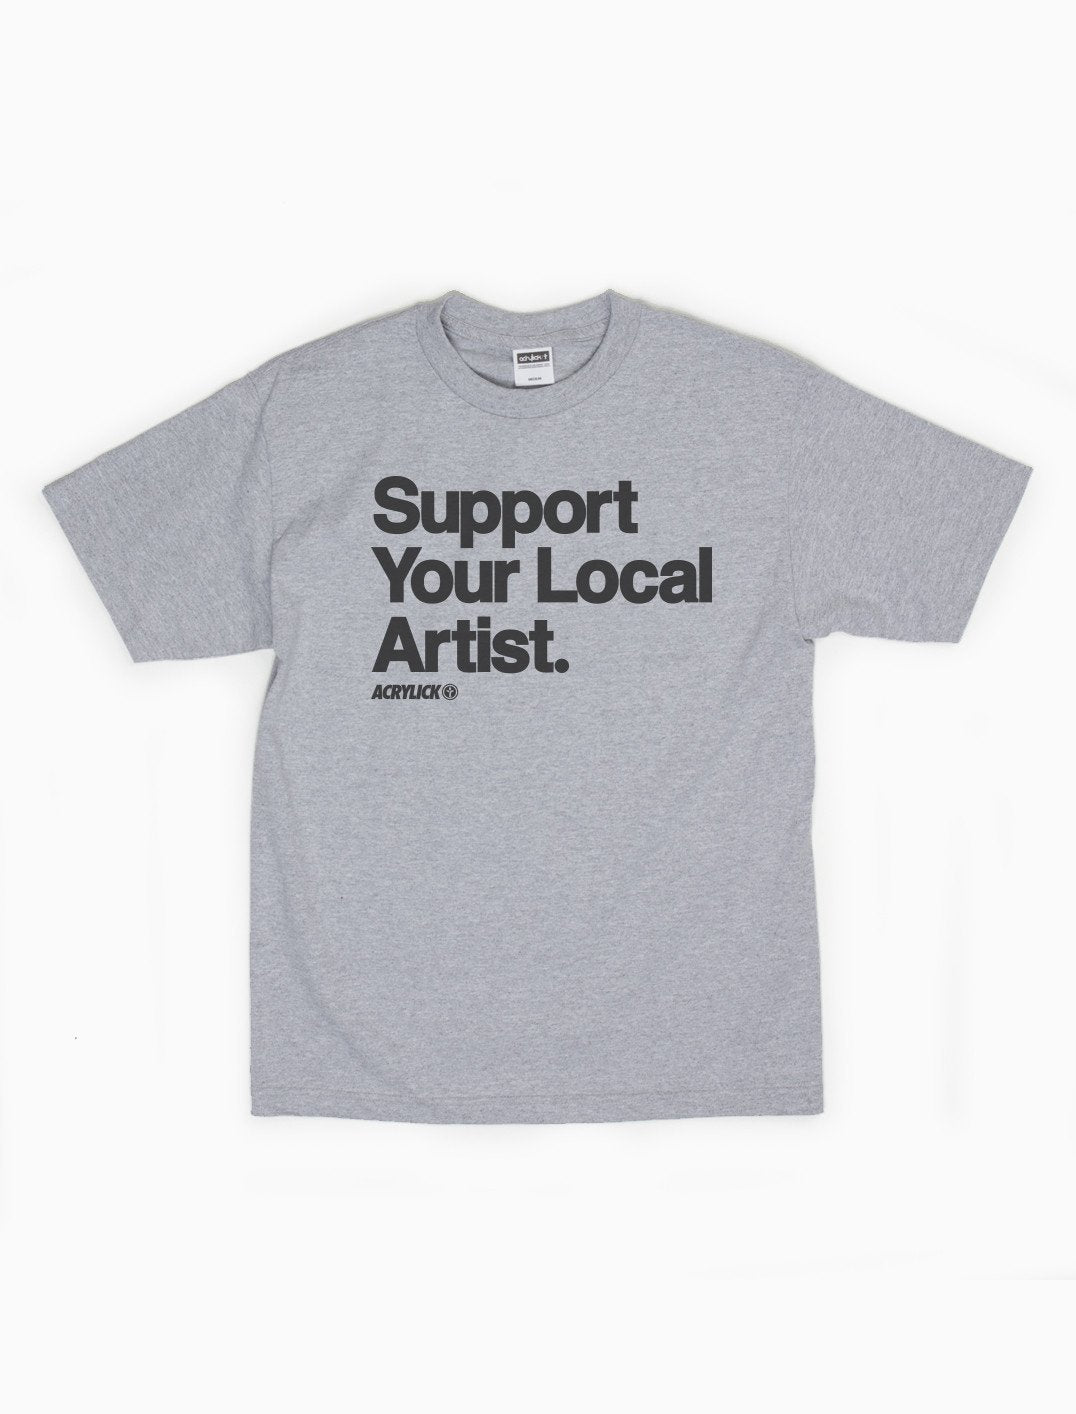 Acrylick Tee - Support Your Local Artist